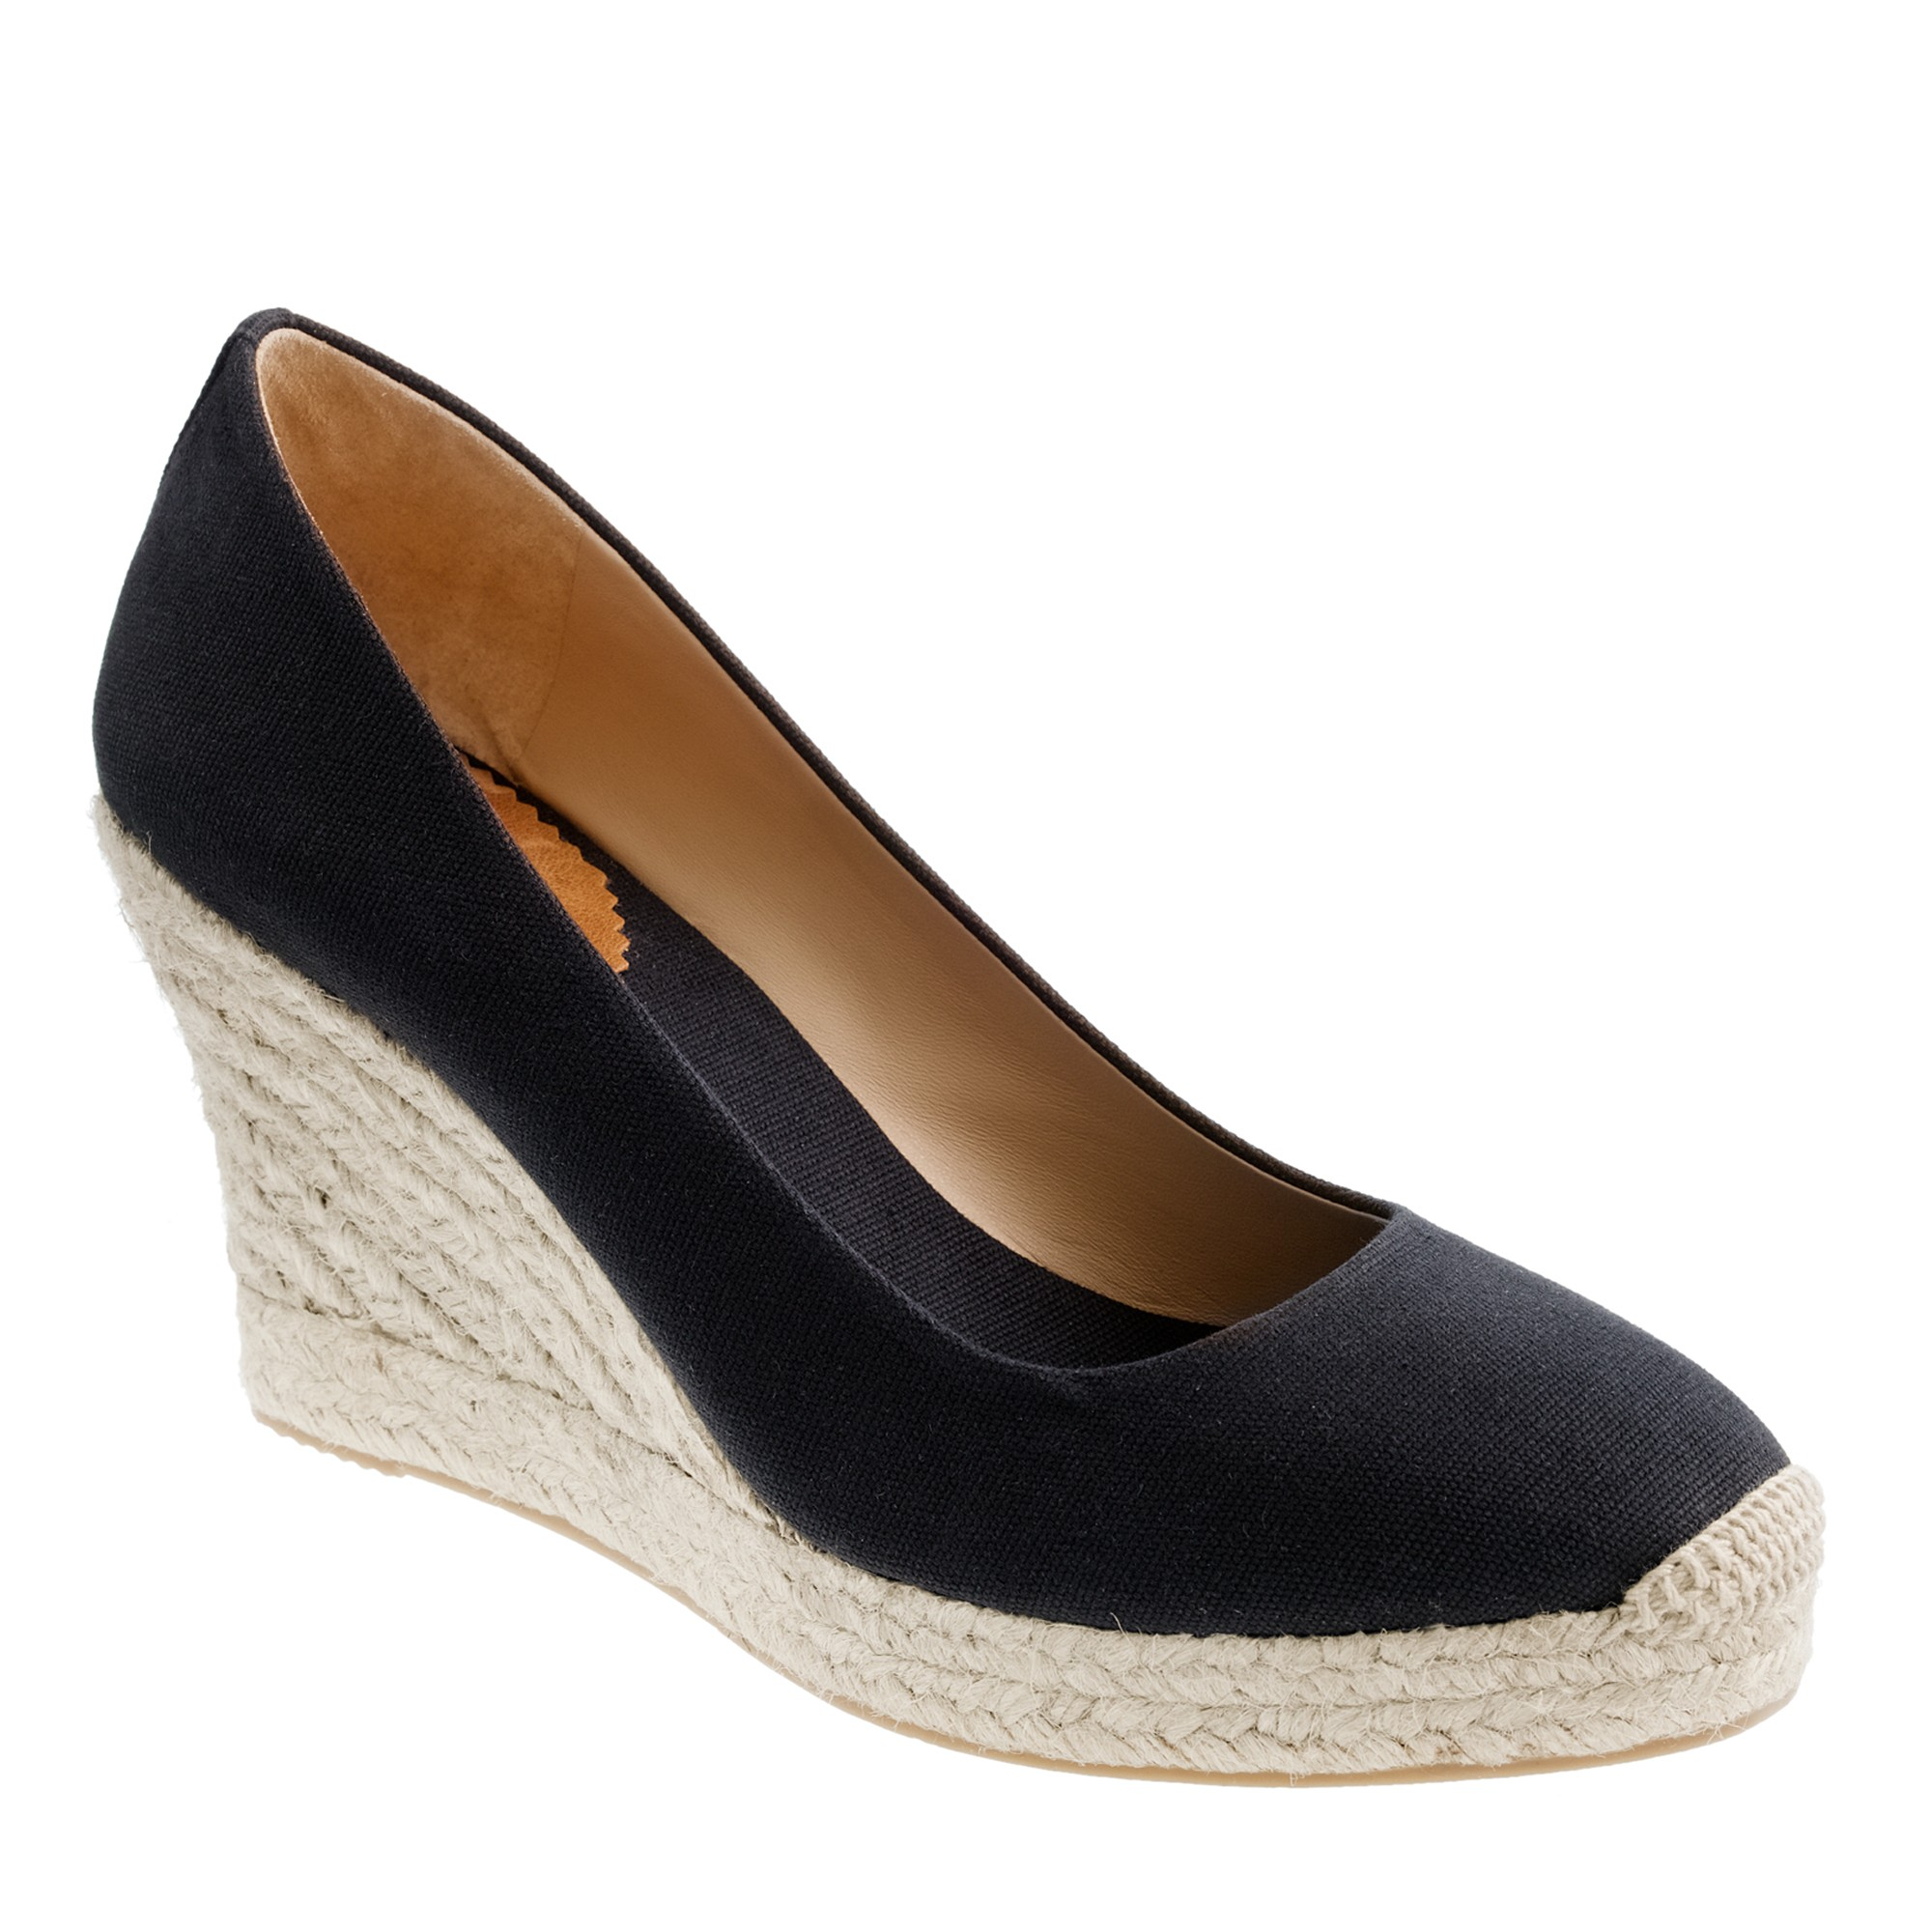 Women's Black Espadrille Peep Toe Wedges See more Forever 21 Heels. Subscribe to the latest from Forever Peep-toe Platform Wedges Black $ $58 (60% off) The RealReal Tory Burch Leather Peep-toe Wedges Brown $75 The RealReal Castaner Belli8 Espadrilles, Nude Open Toe WedgesPrice: $